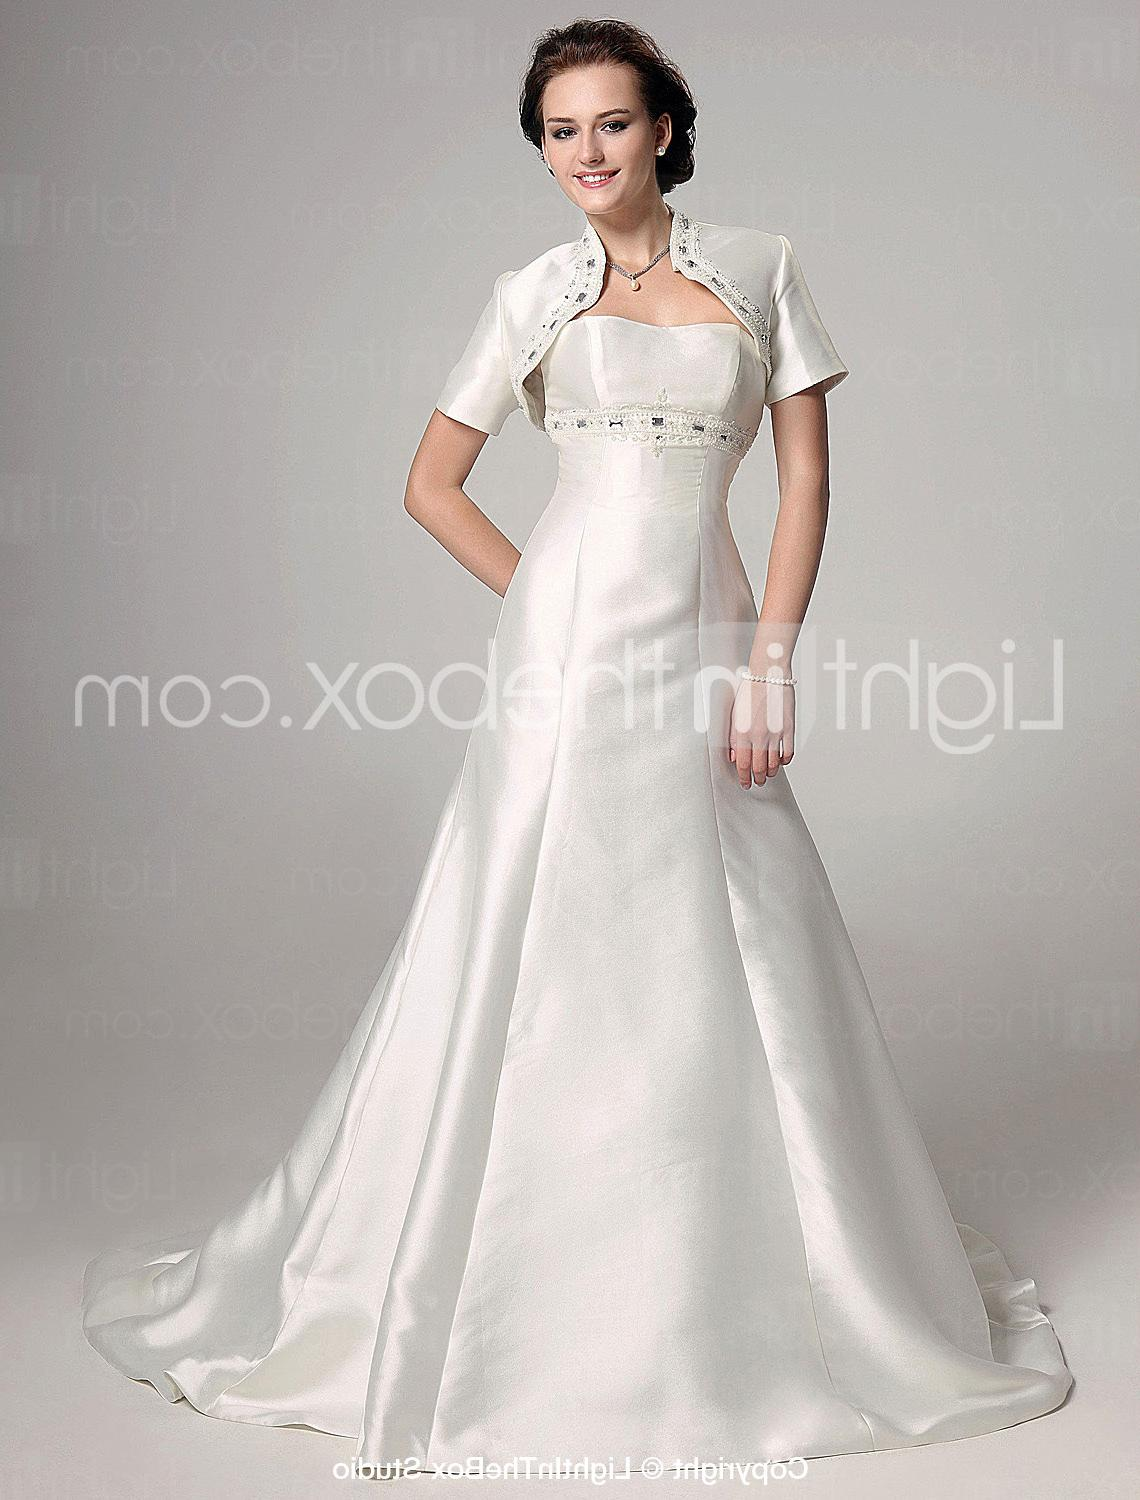 Crystal Wedding Dress with